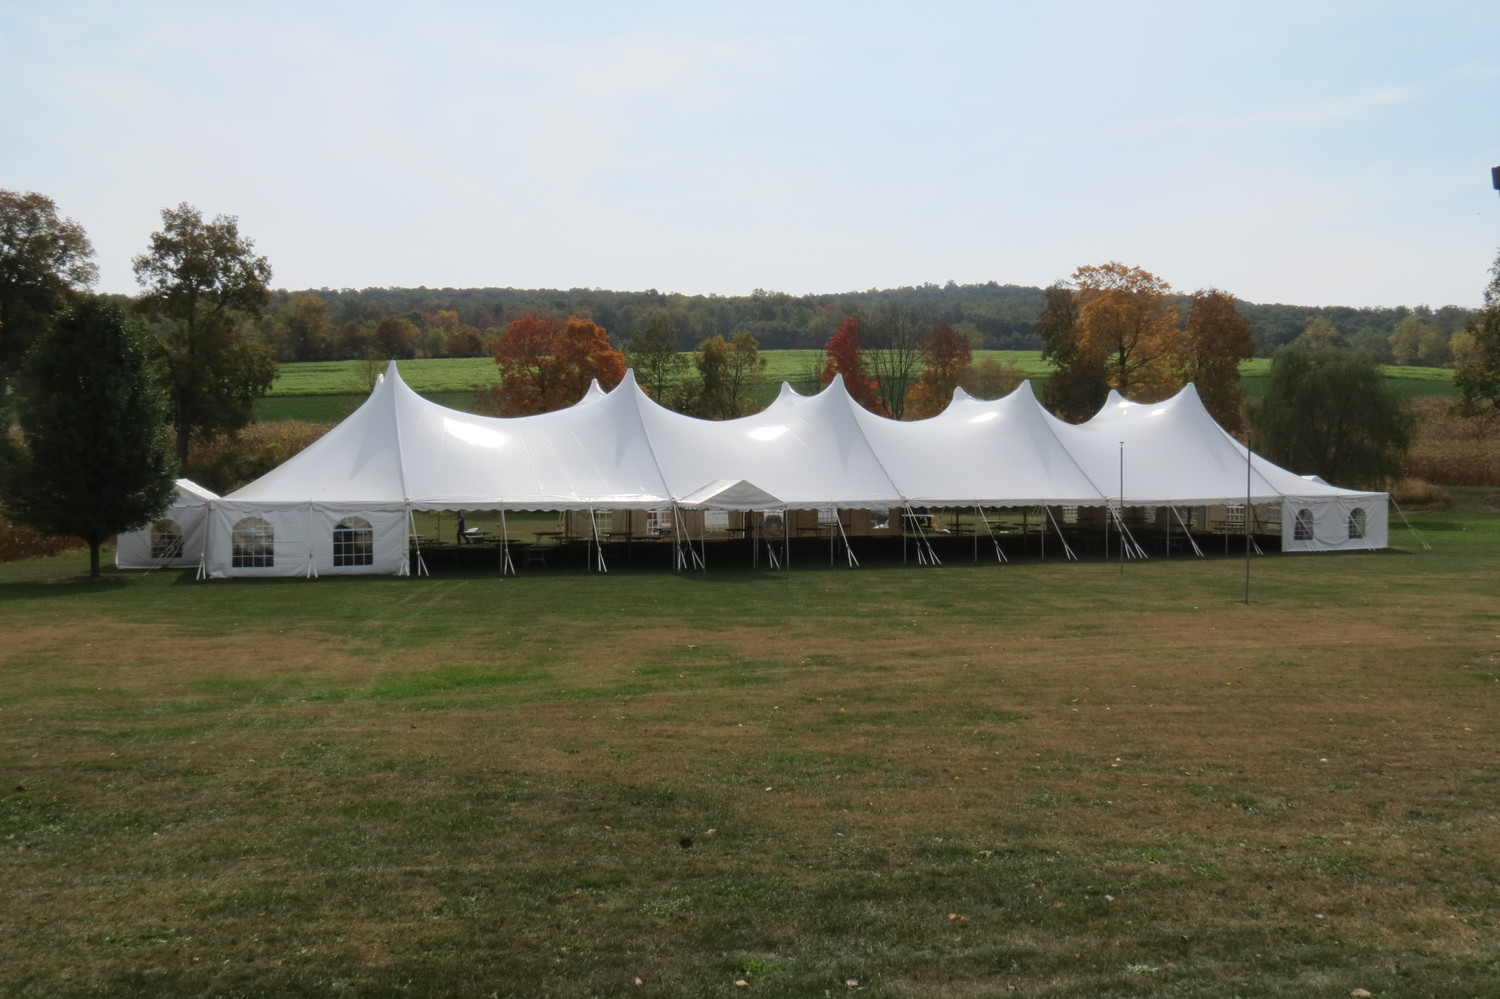 Used Party Tents For Sale >> Tents For Sale Used Large Tents Tents For Rent Tent Rentals In Pa